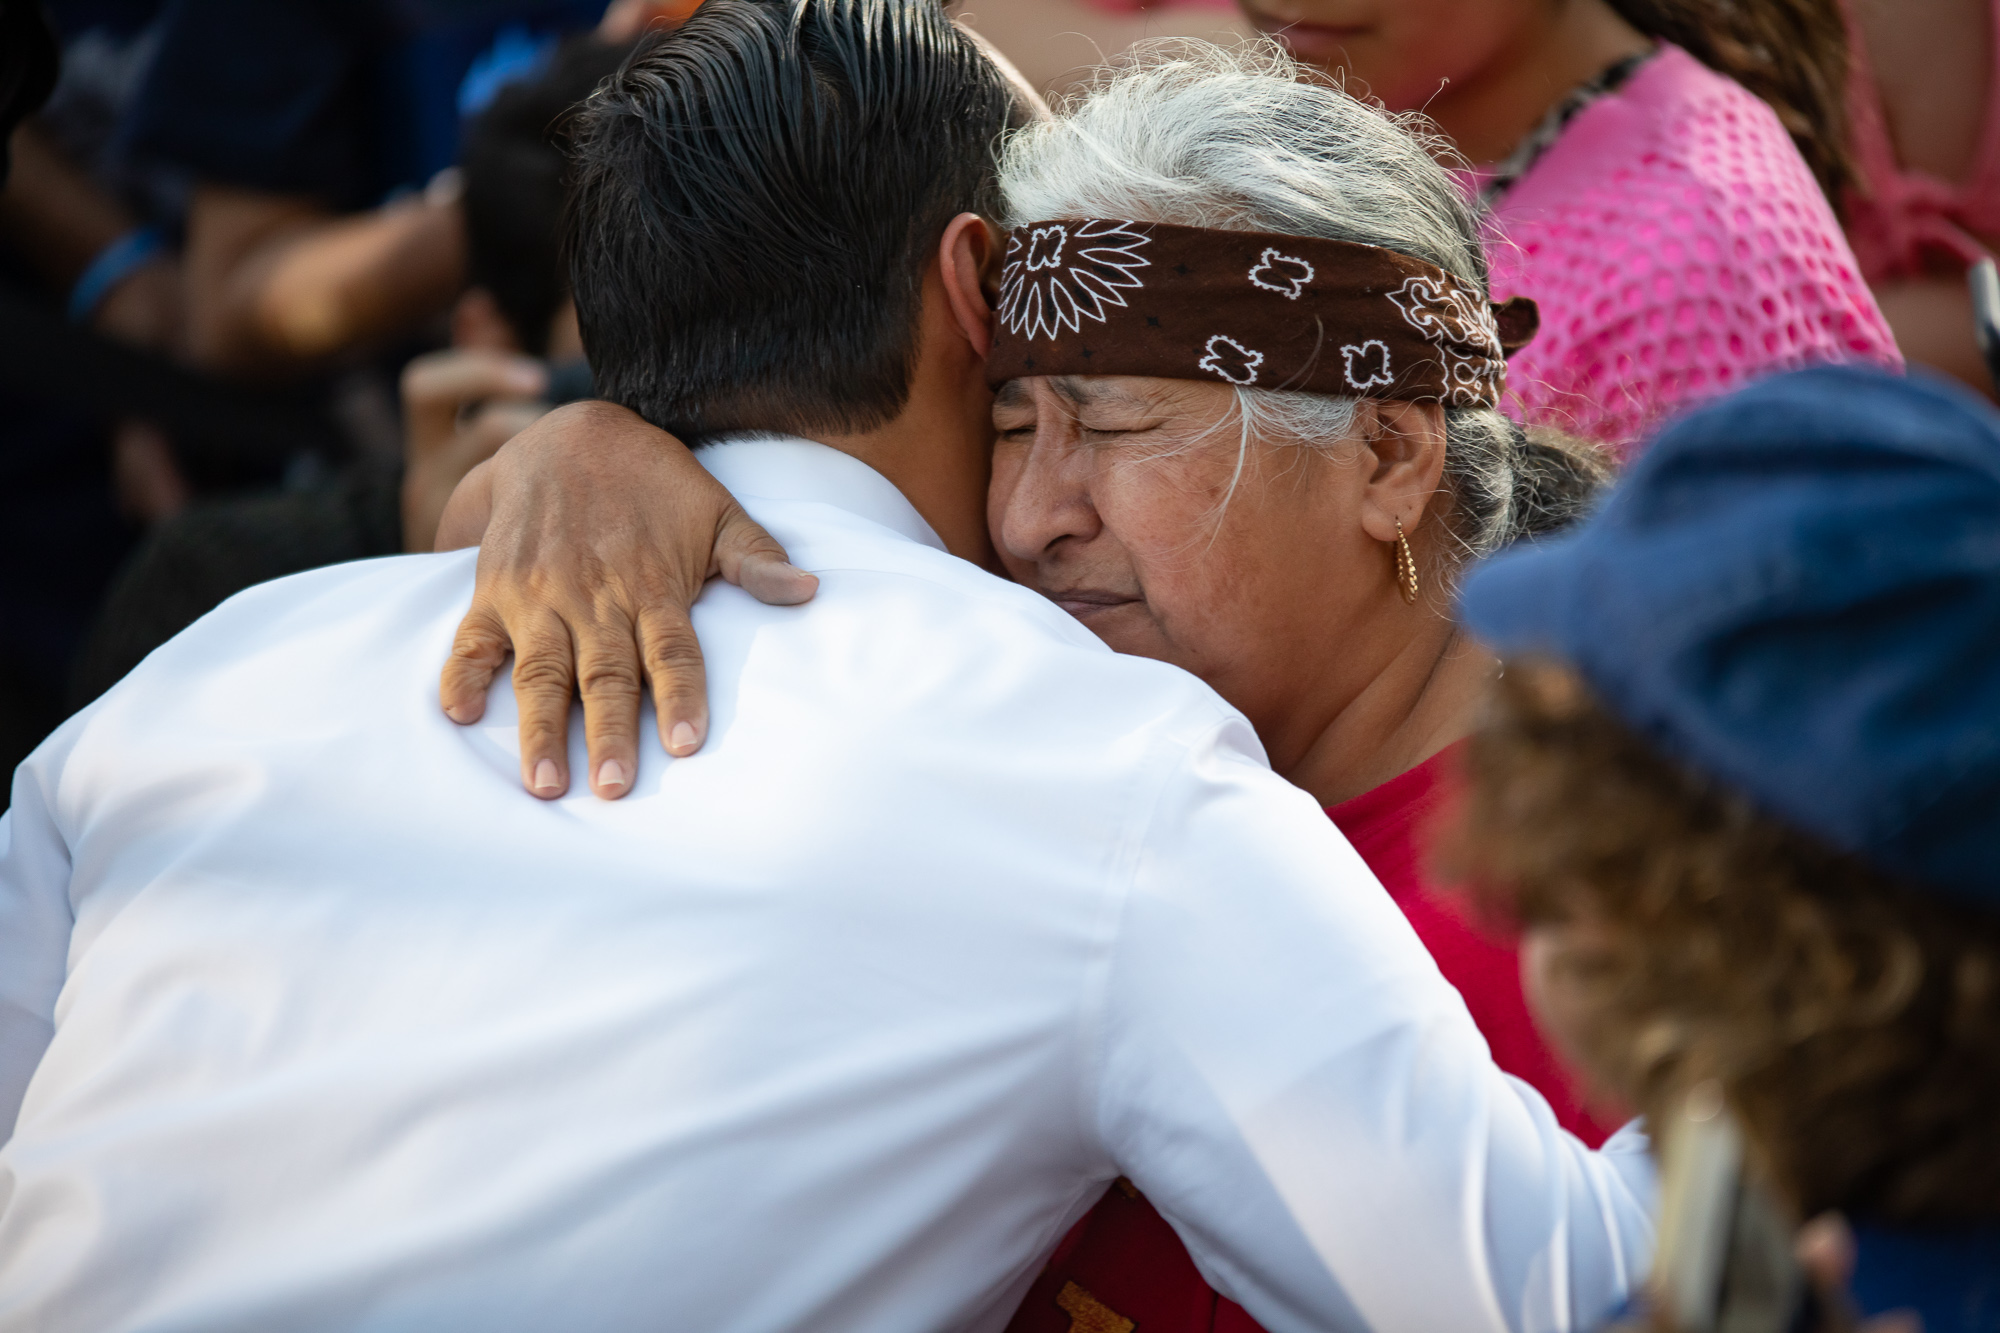 Castro is embraced by a rally attendee. (Photo by:  Joel Pena , Photographer - The San Antonio Sentinel)